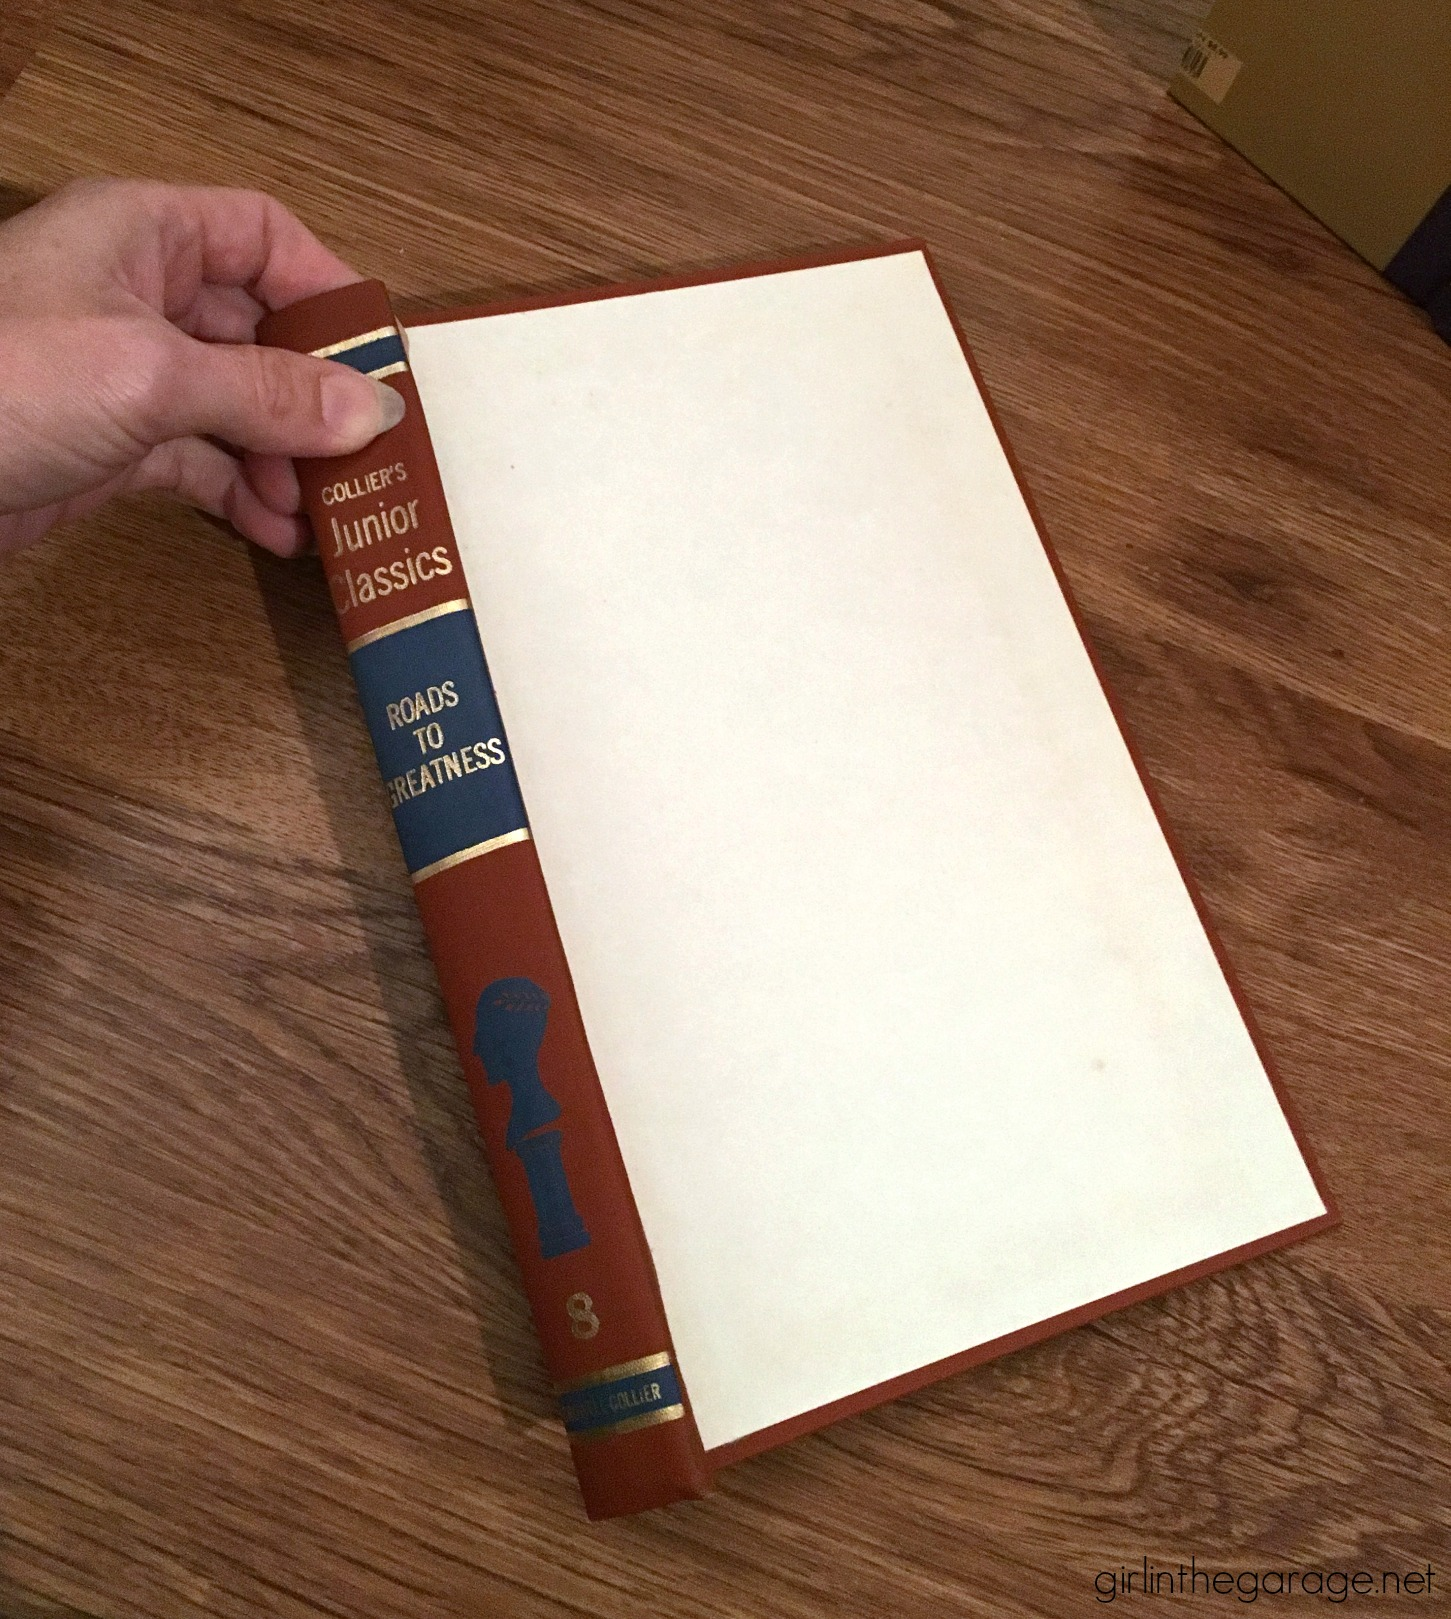 Thrifted book cover projects - Easy DIY tutorial by Girl in the Garage